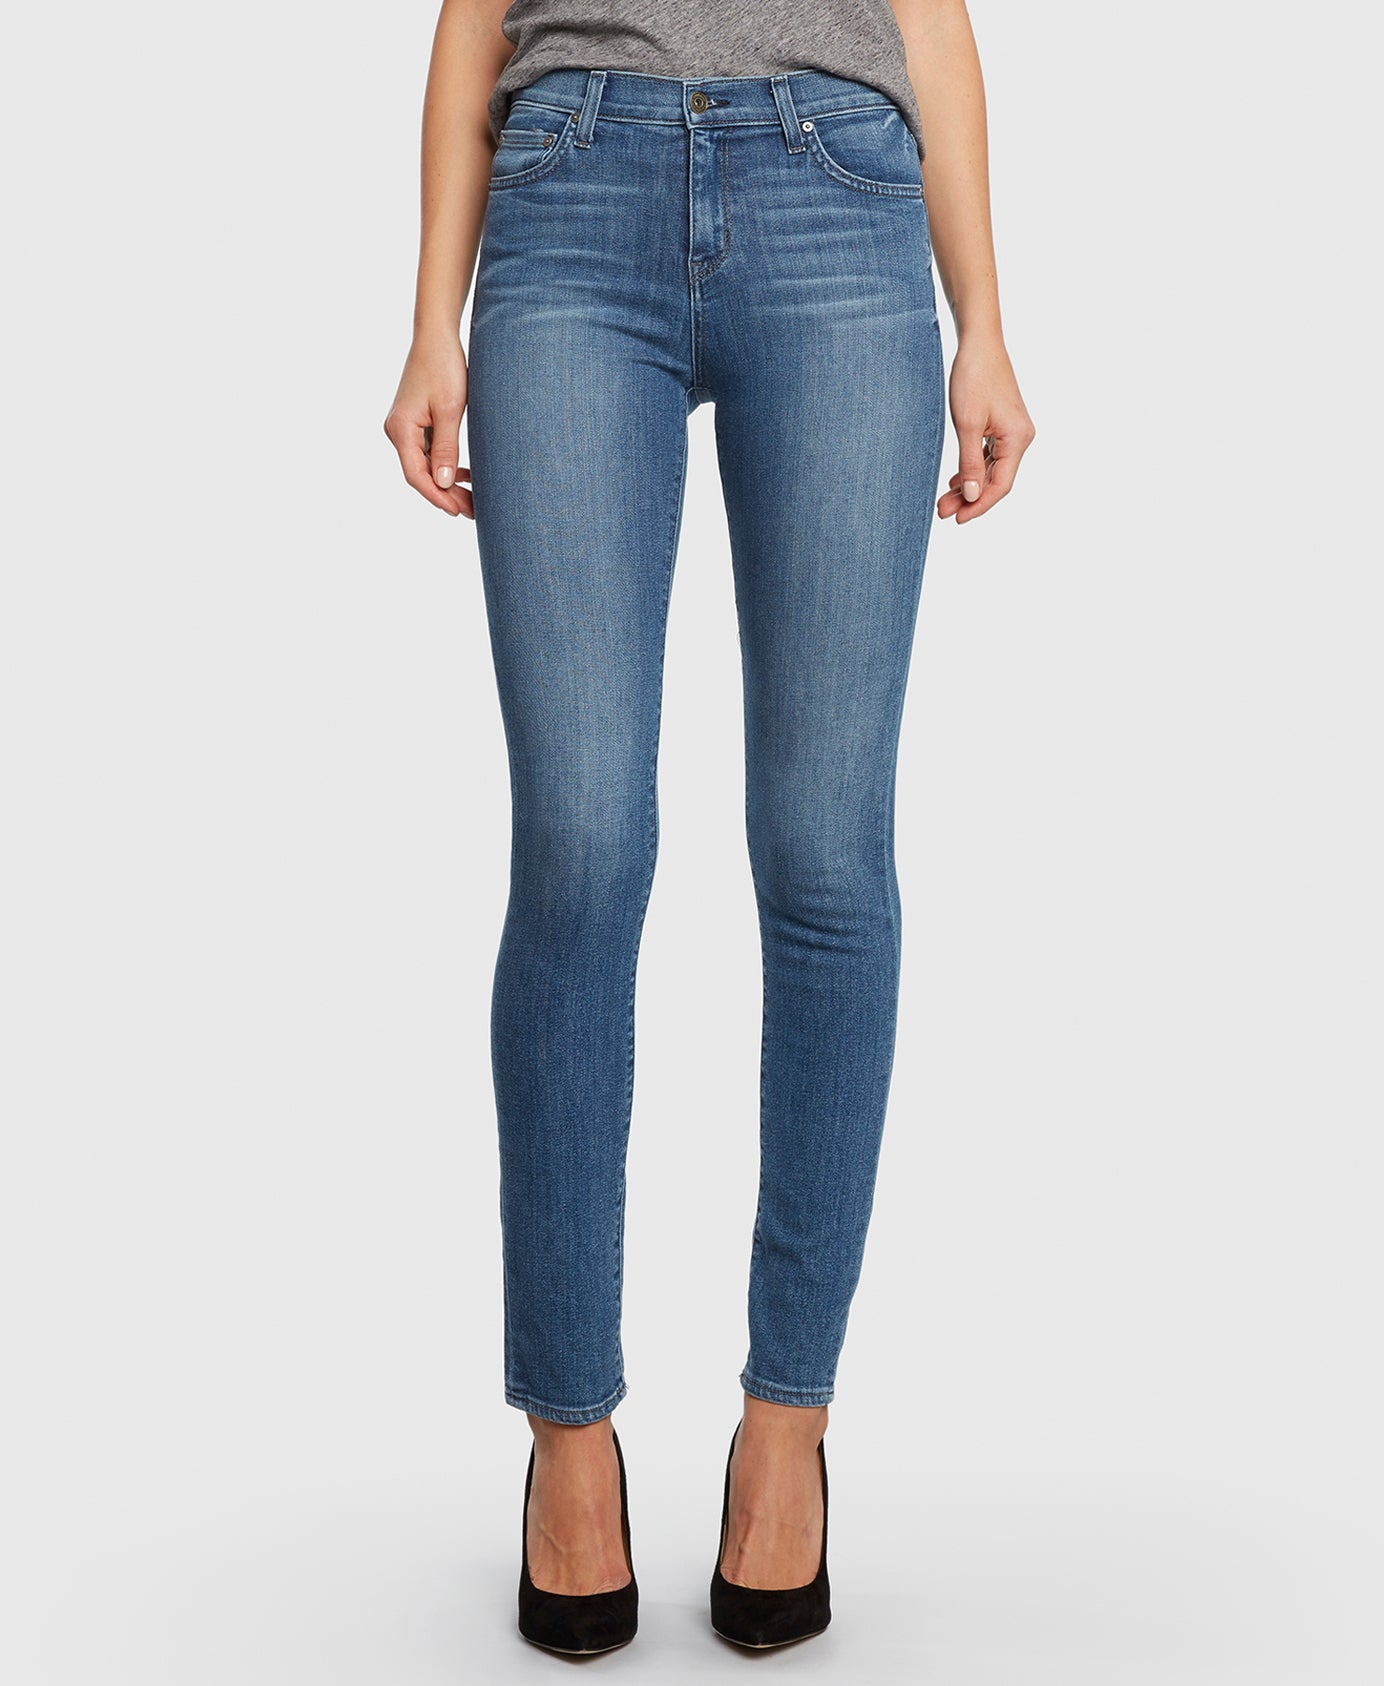 Principle BEAUTY in Summerland Skinny Jeans detail